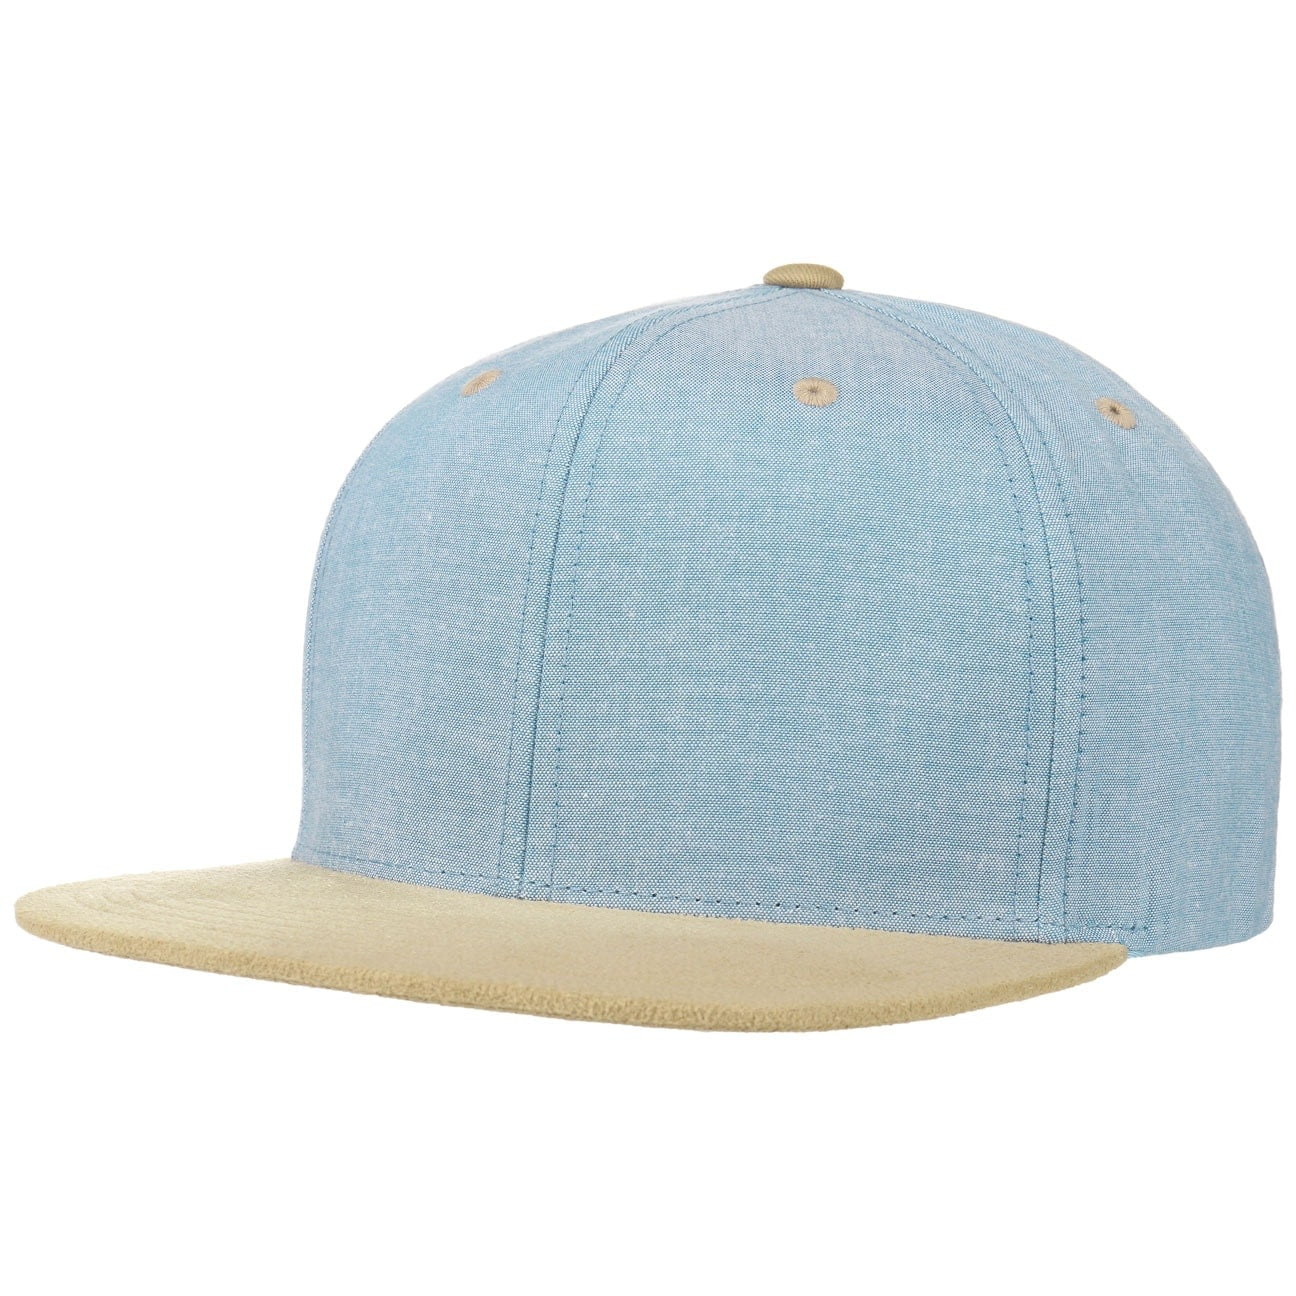 Chambray Suede Snapback Cap